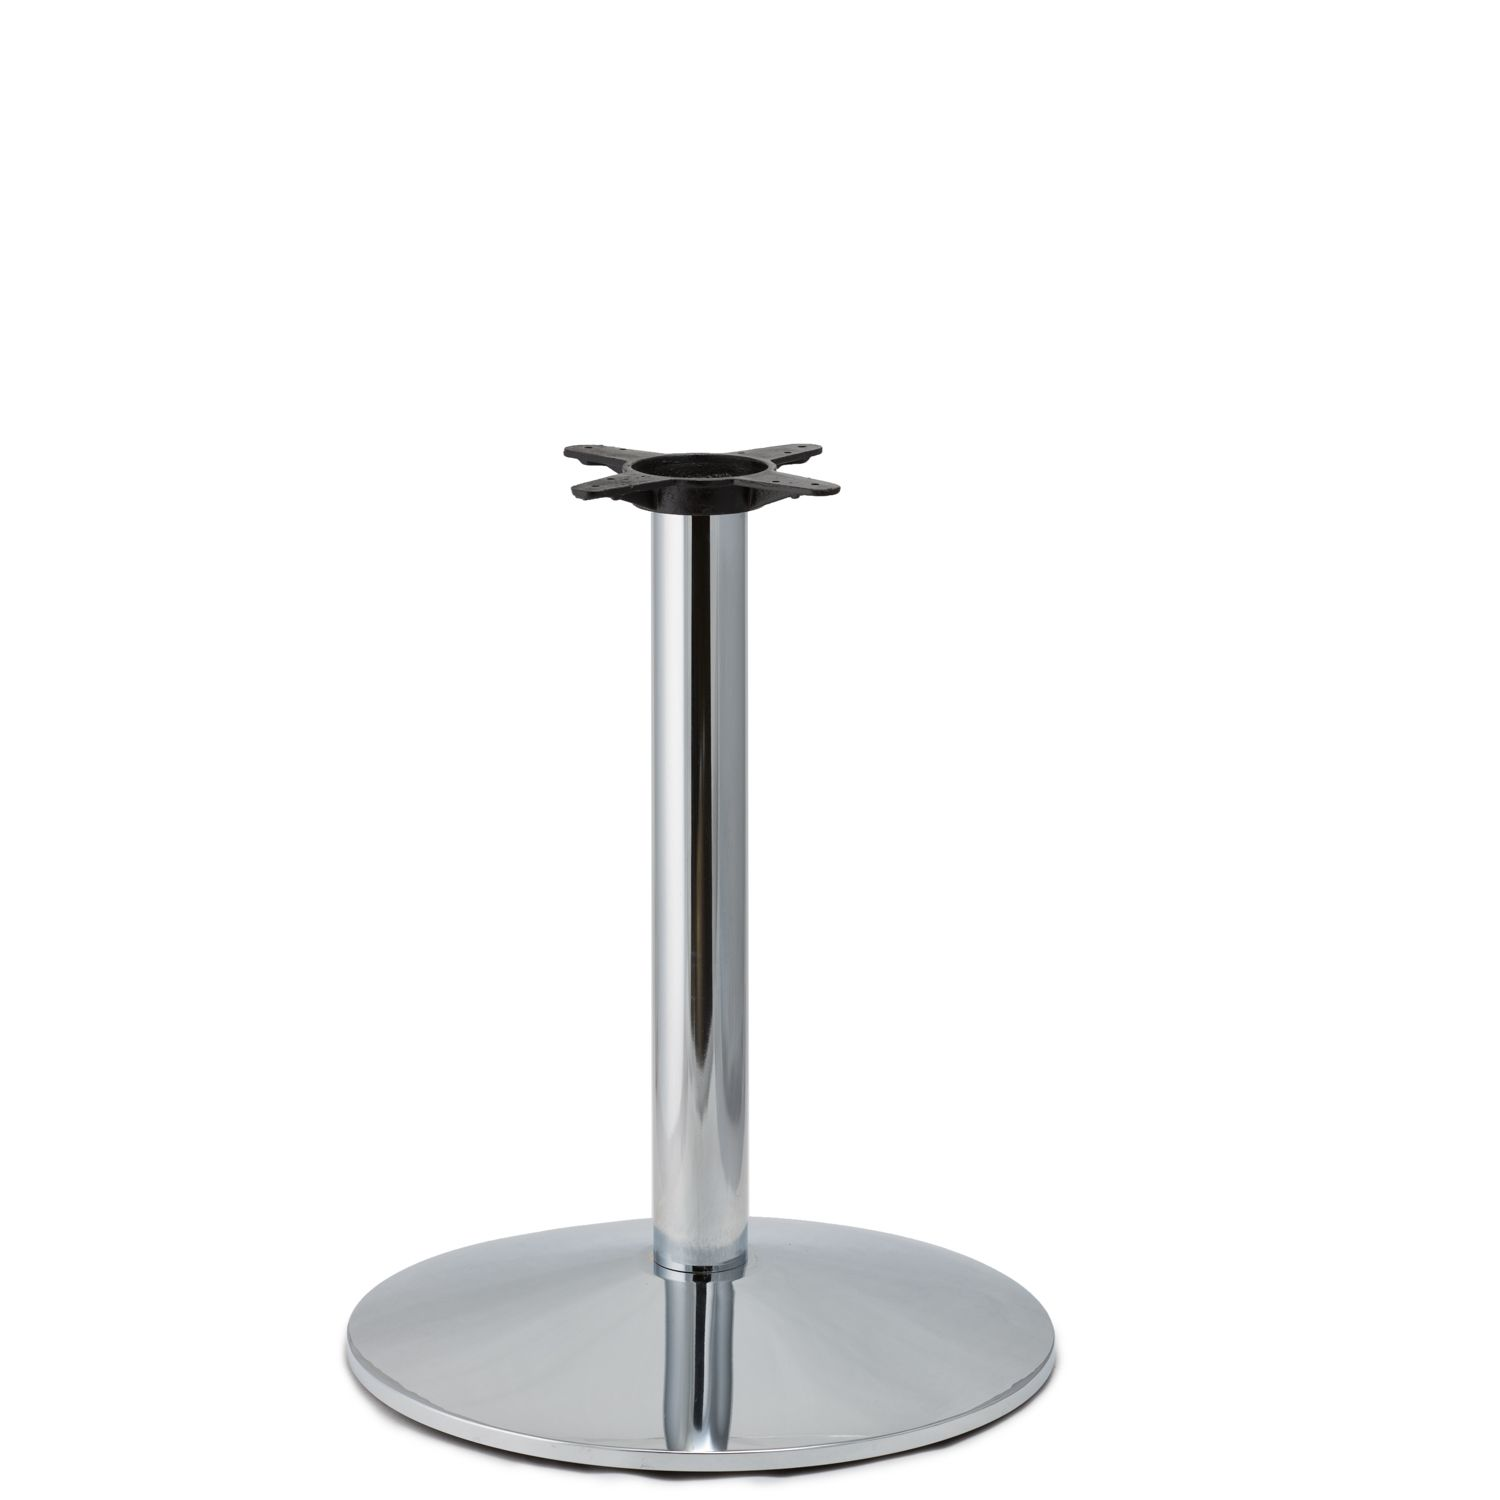 C22 Chrome - Medium Weight Table Base - Dining Height